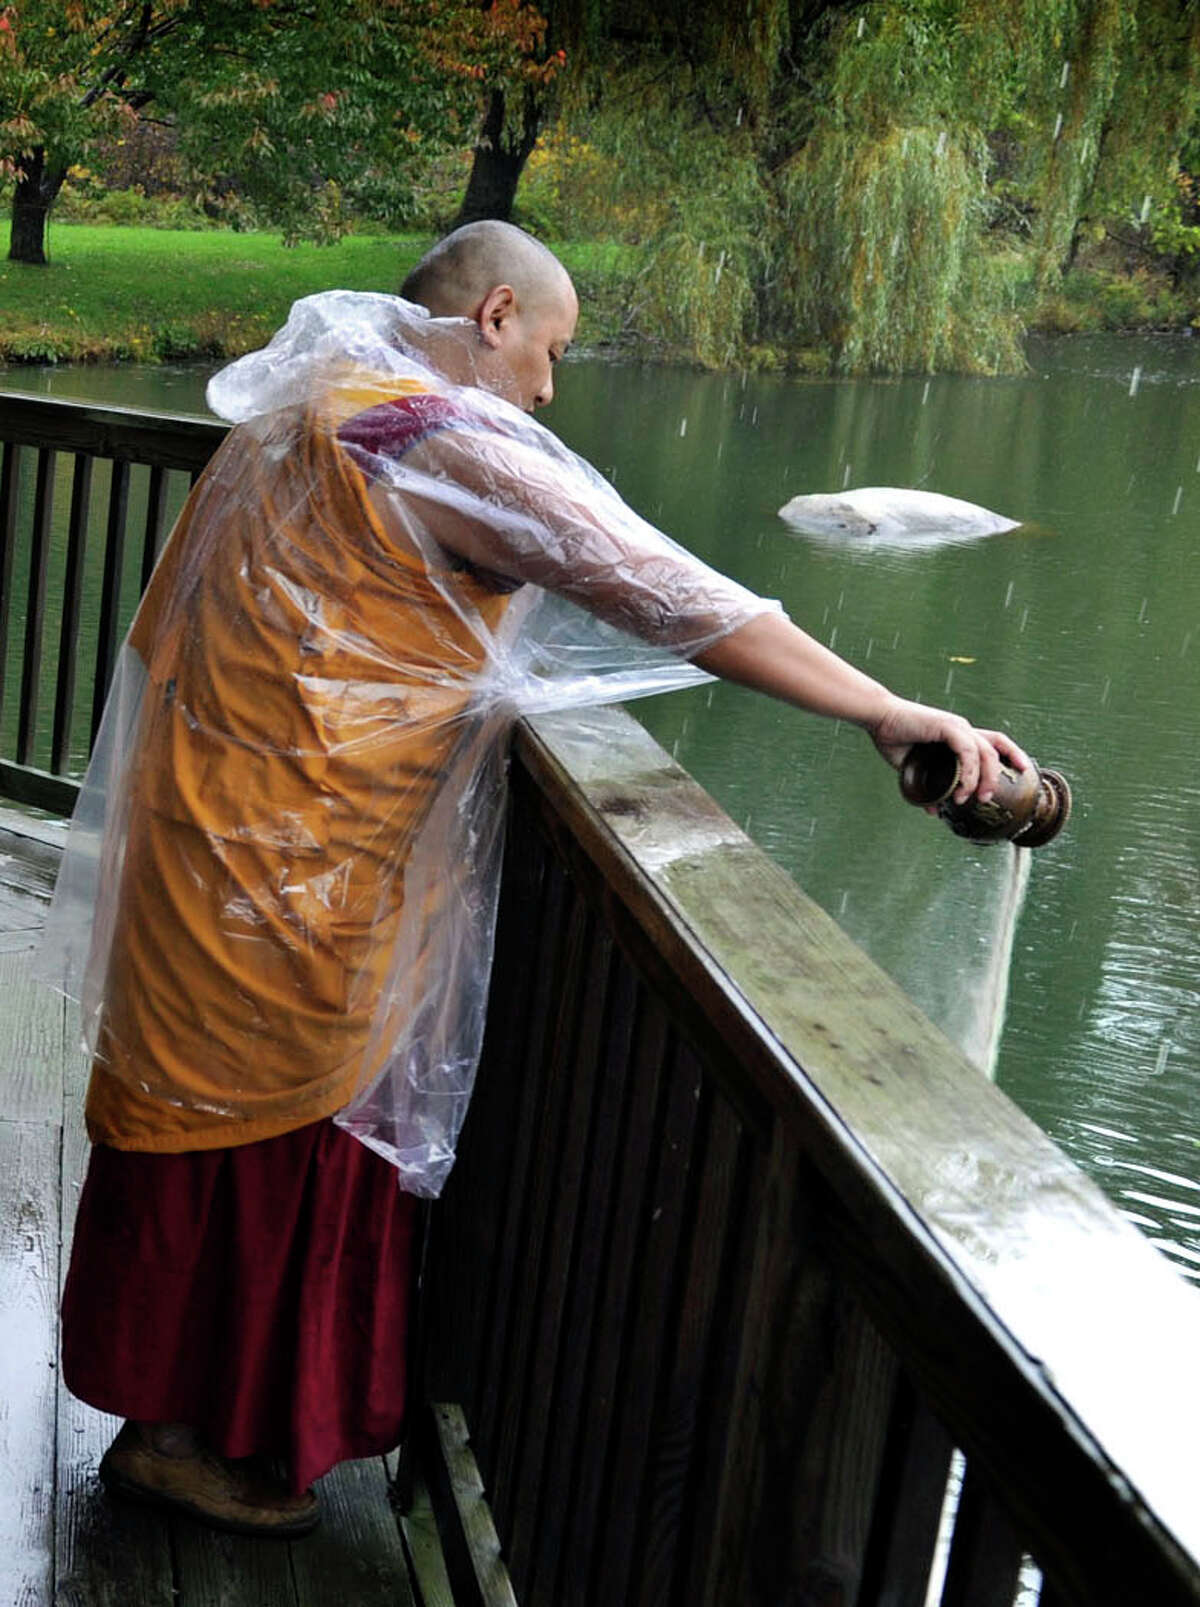 Tibetan Buddhist monks perform a ceremony in which after dissolving the sand mandala that they created in honor of the visit of the Dalai Lama to Danbury, they pour the sand into a pond at the Ives Concert Park, Friday, Oct. 19, 2012.